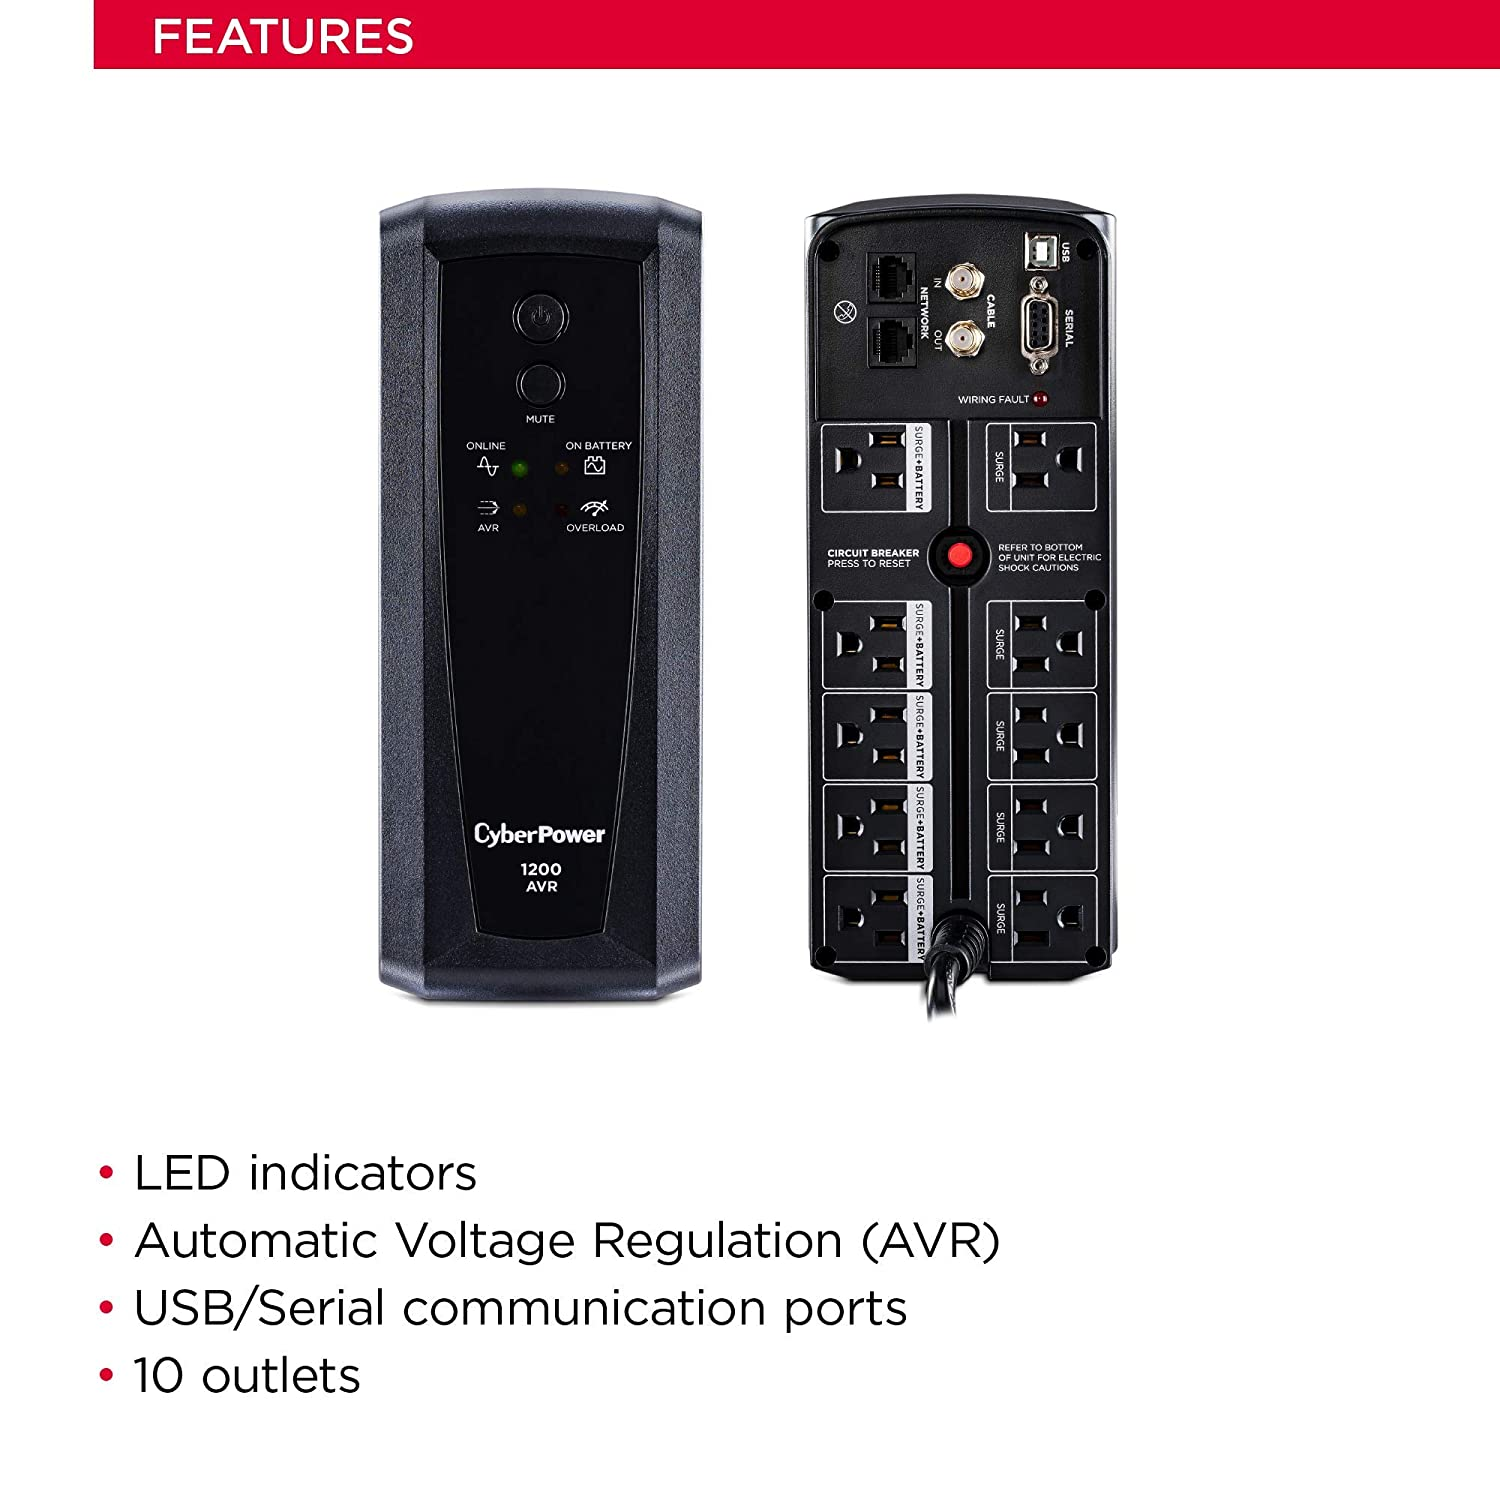 CYBERPOWER 1200AVR DRIVERS FOR WINDOWS 7